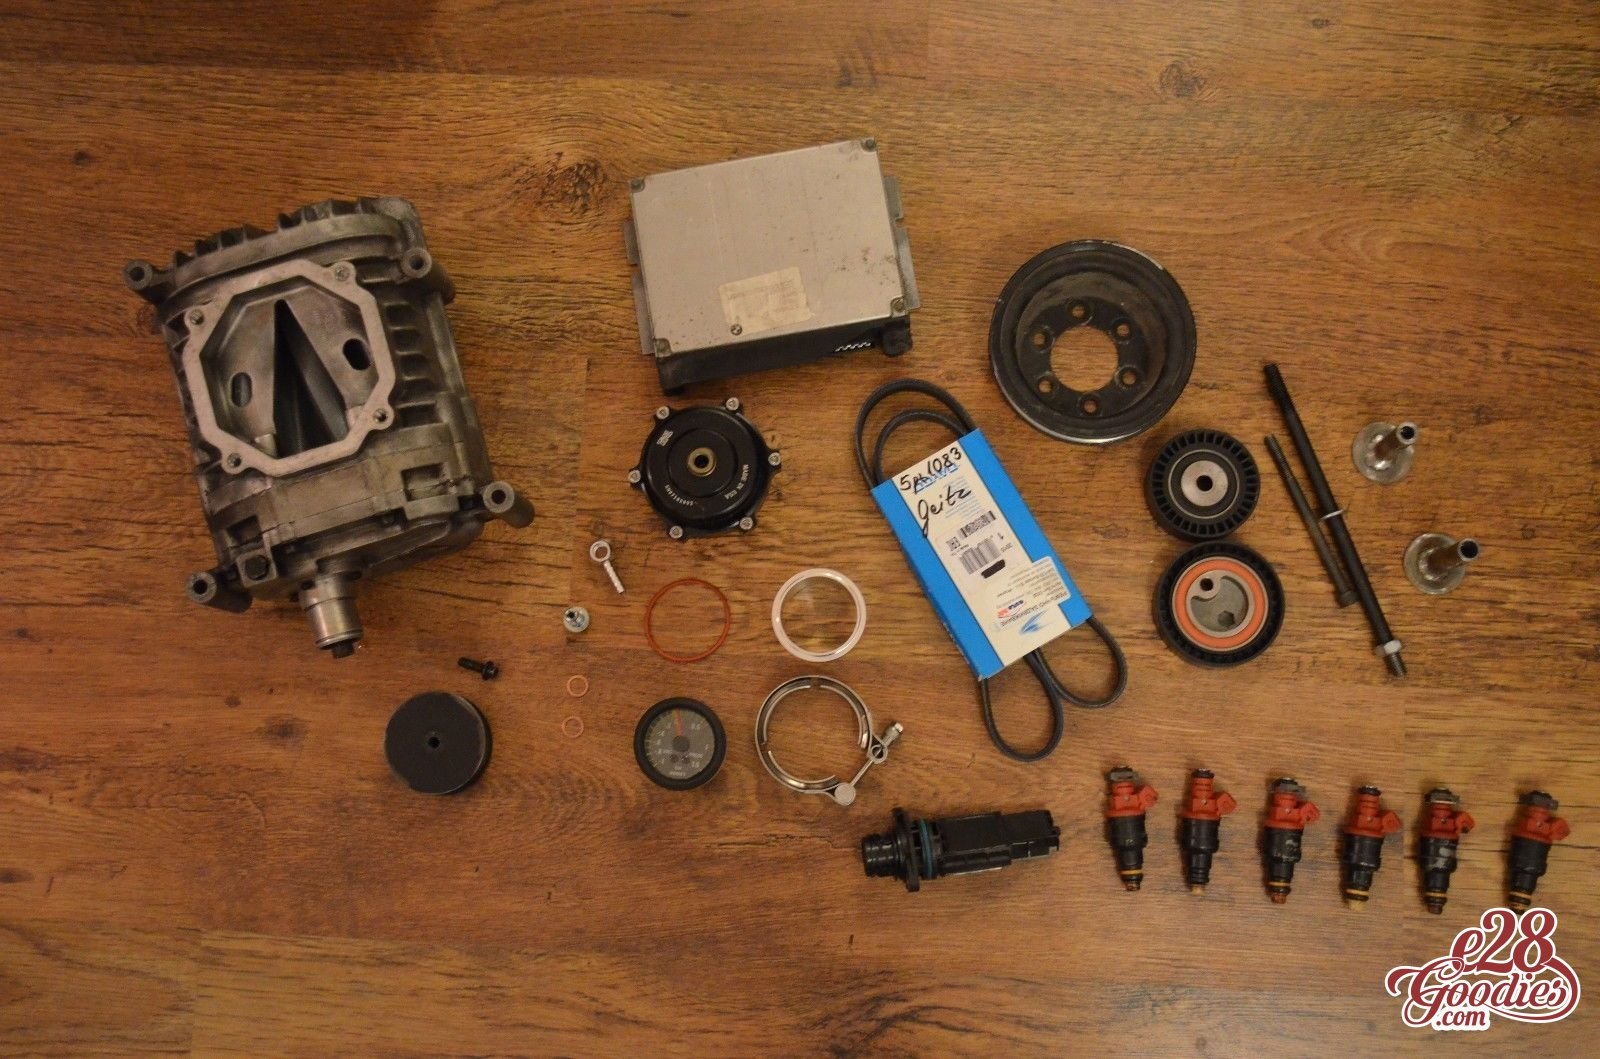 Exchanging comfort for even more power  M52 supercharging  - E28 Goodies